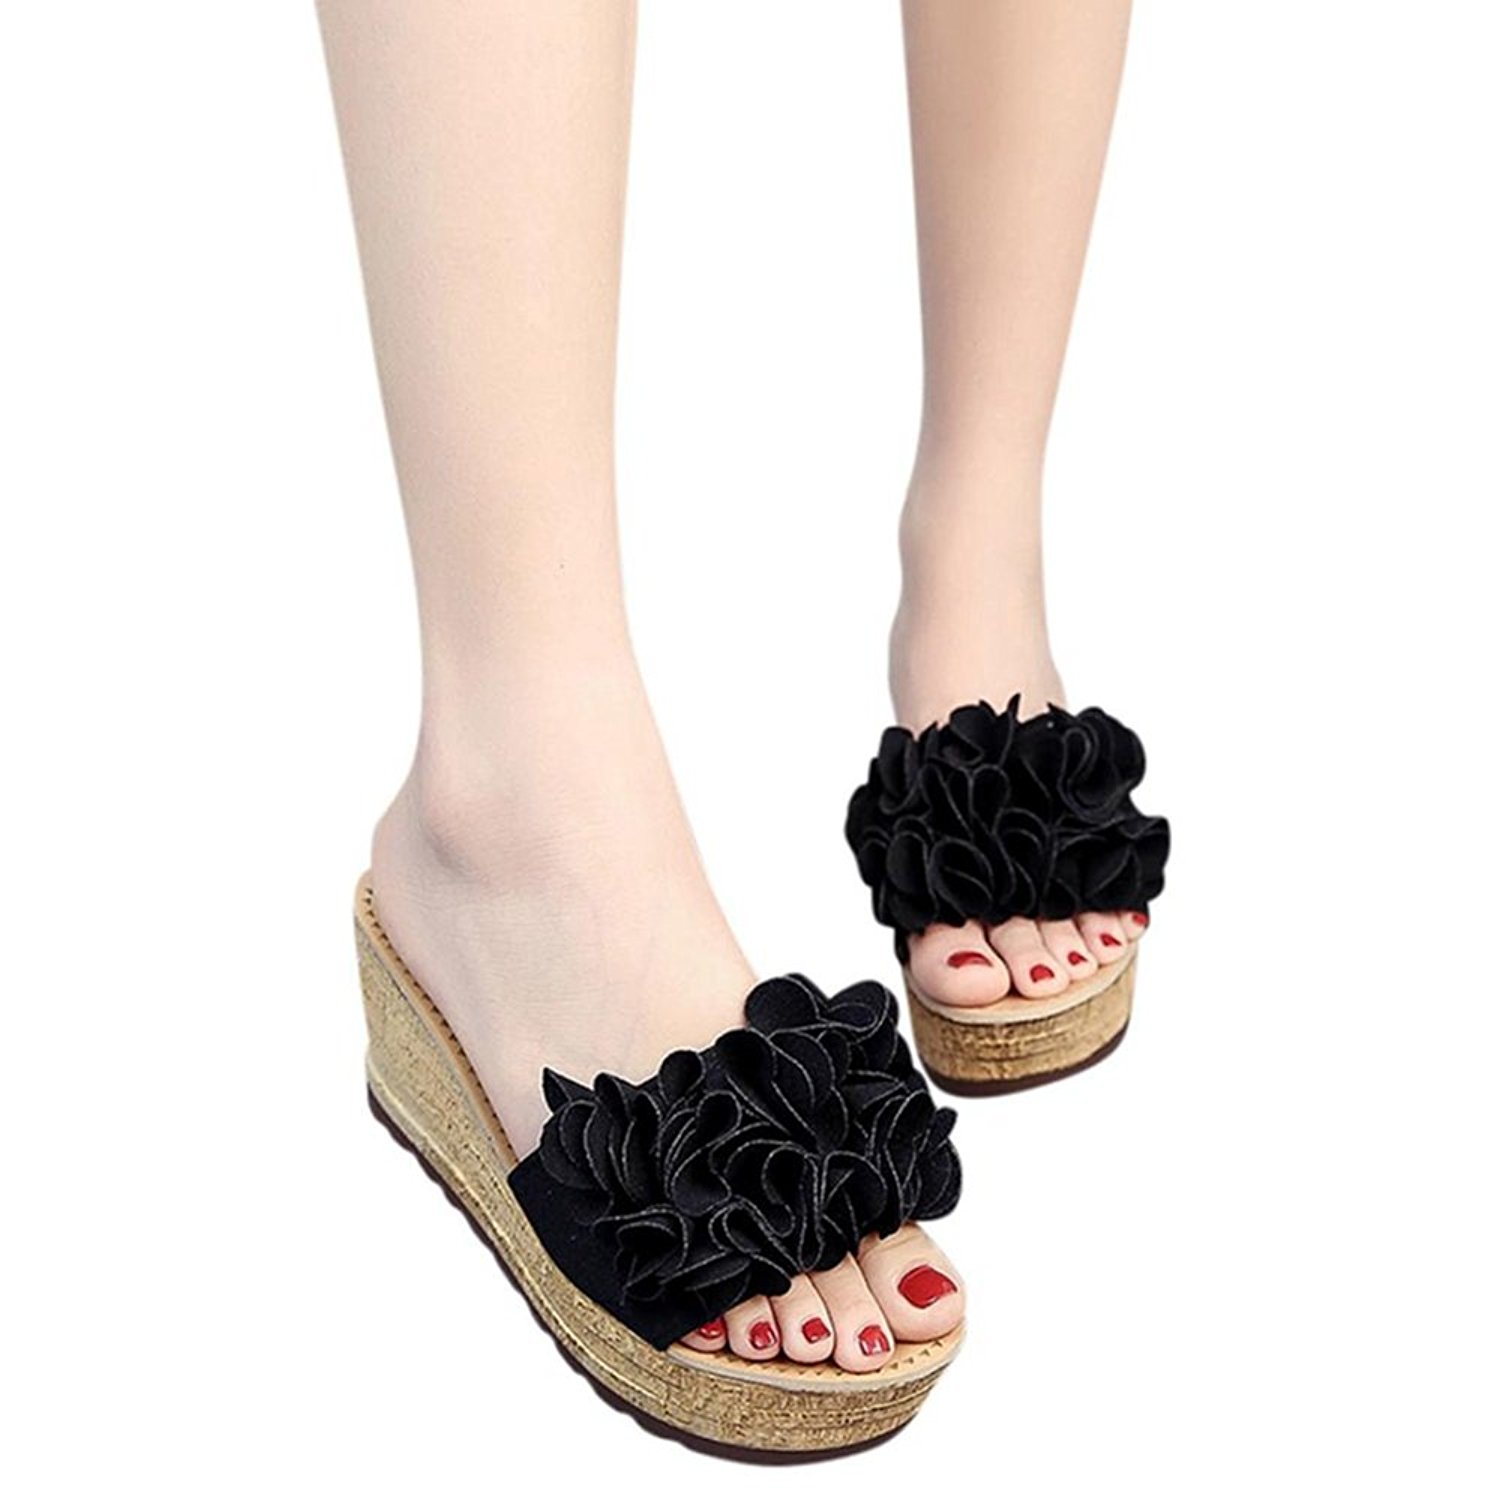 c6c5374350c Get Quotations · Besde Floral Wedgies Slippers Women Wedge Heel Sandals  Wedge Sandals Shoes